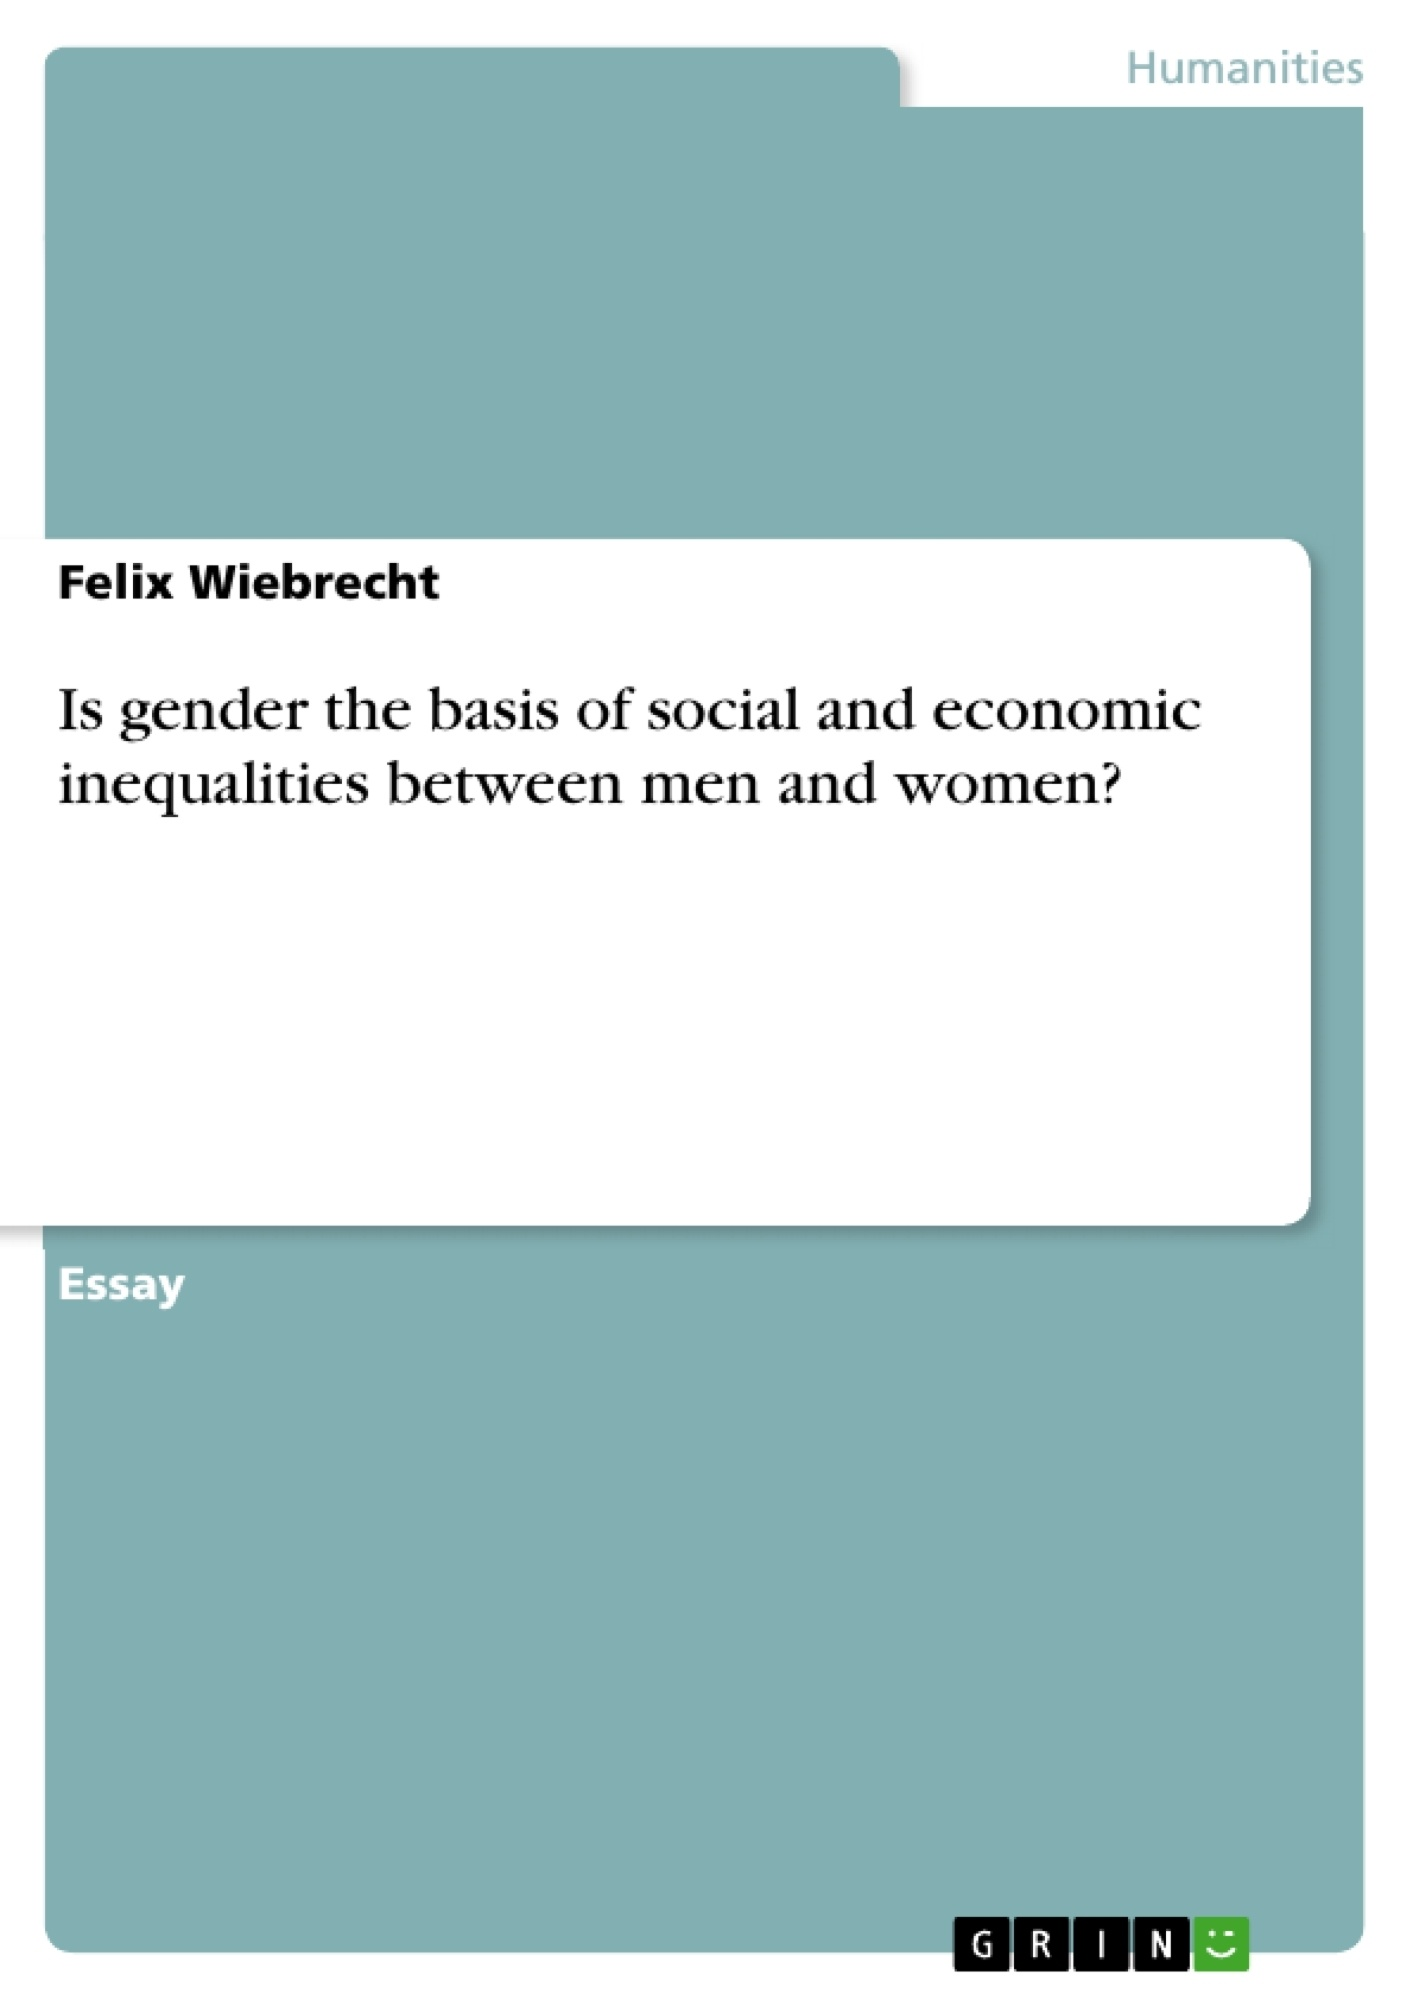 Title: Is gender the basis of social and economic inequalities between men and women?